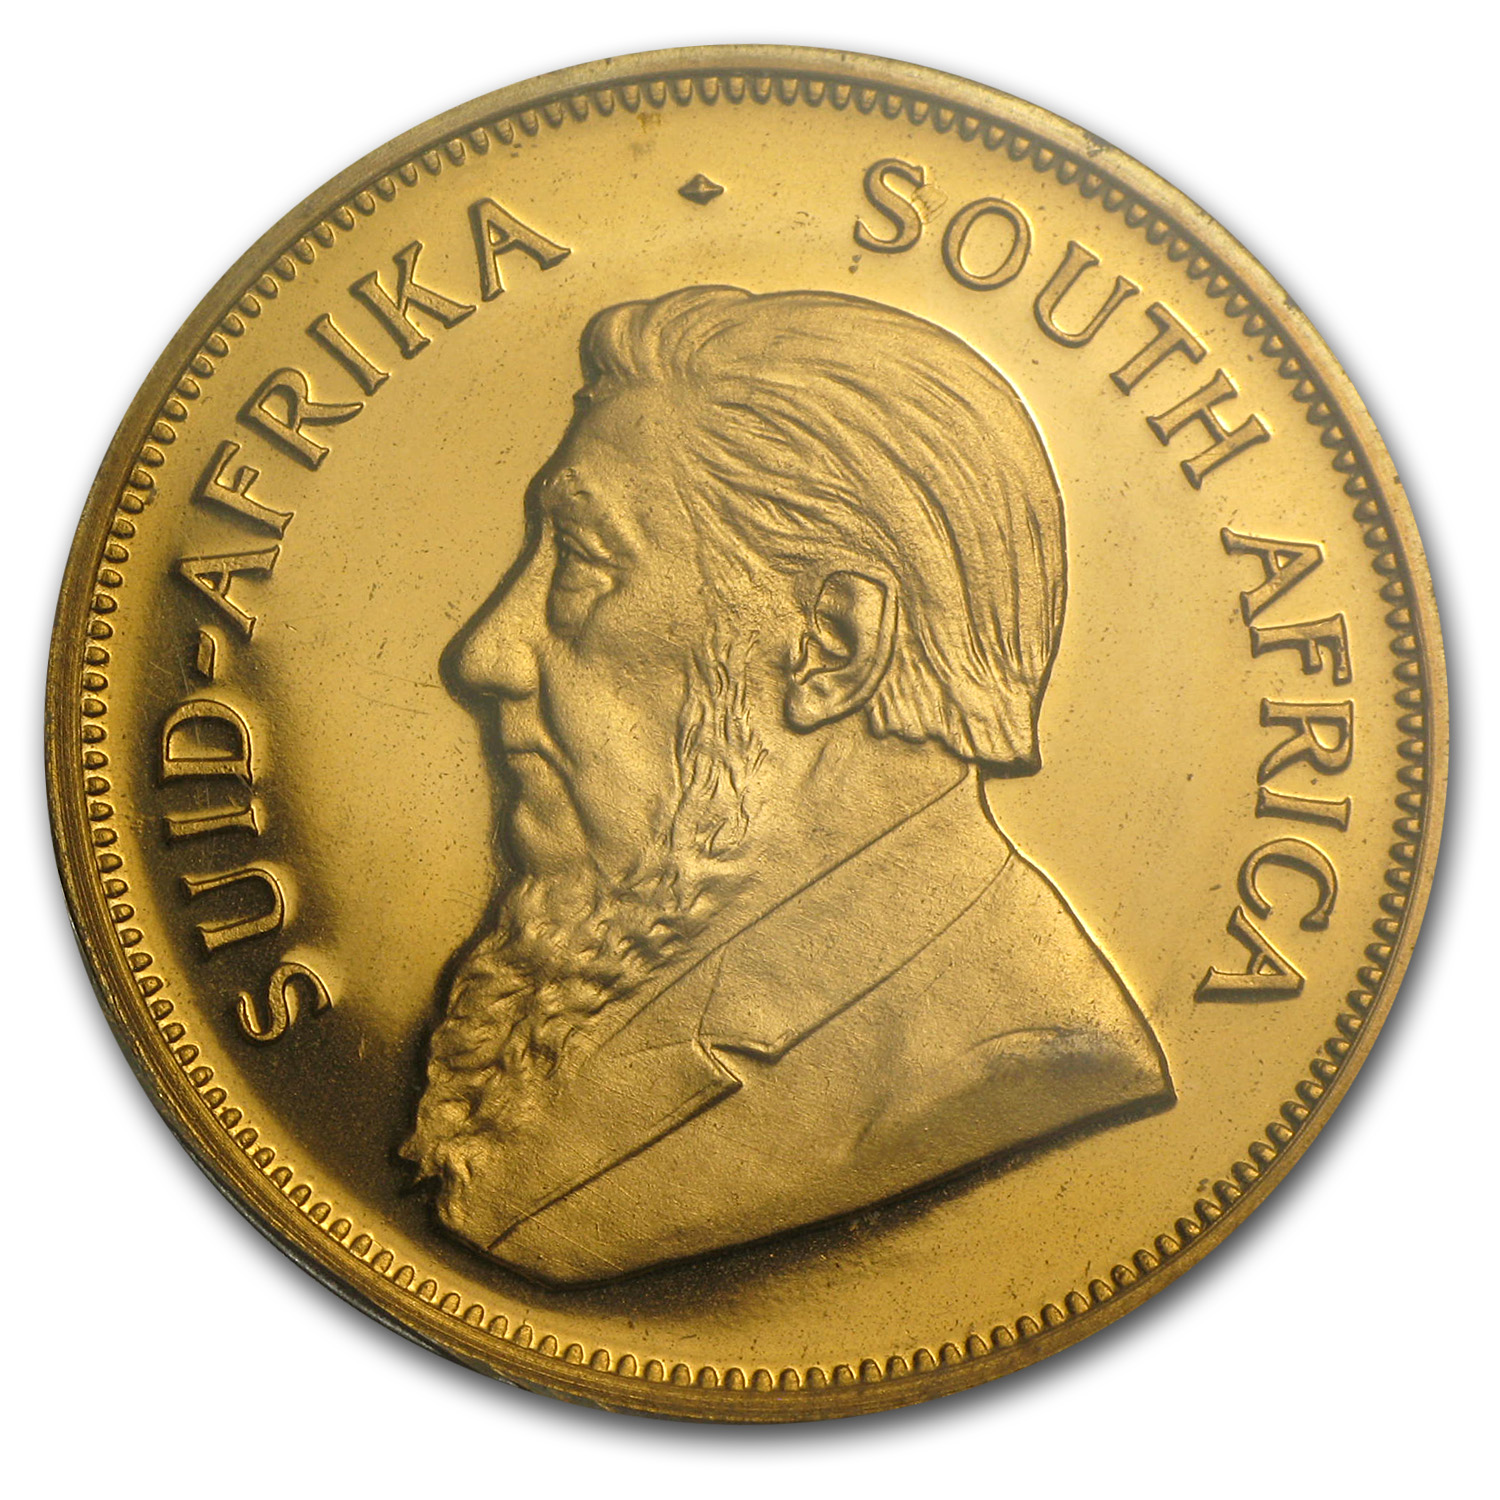 1979 1 oz Gold South African Krugerrand - SAGCE (Proof)